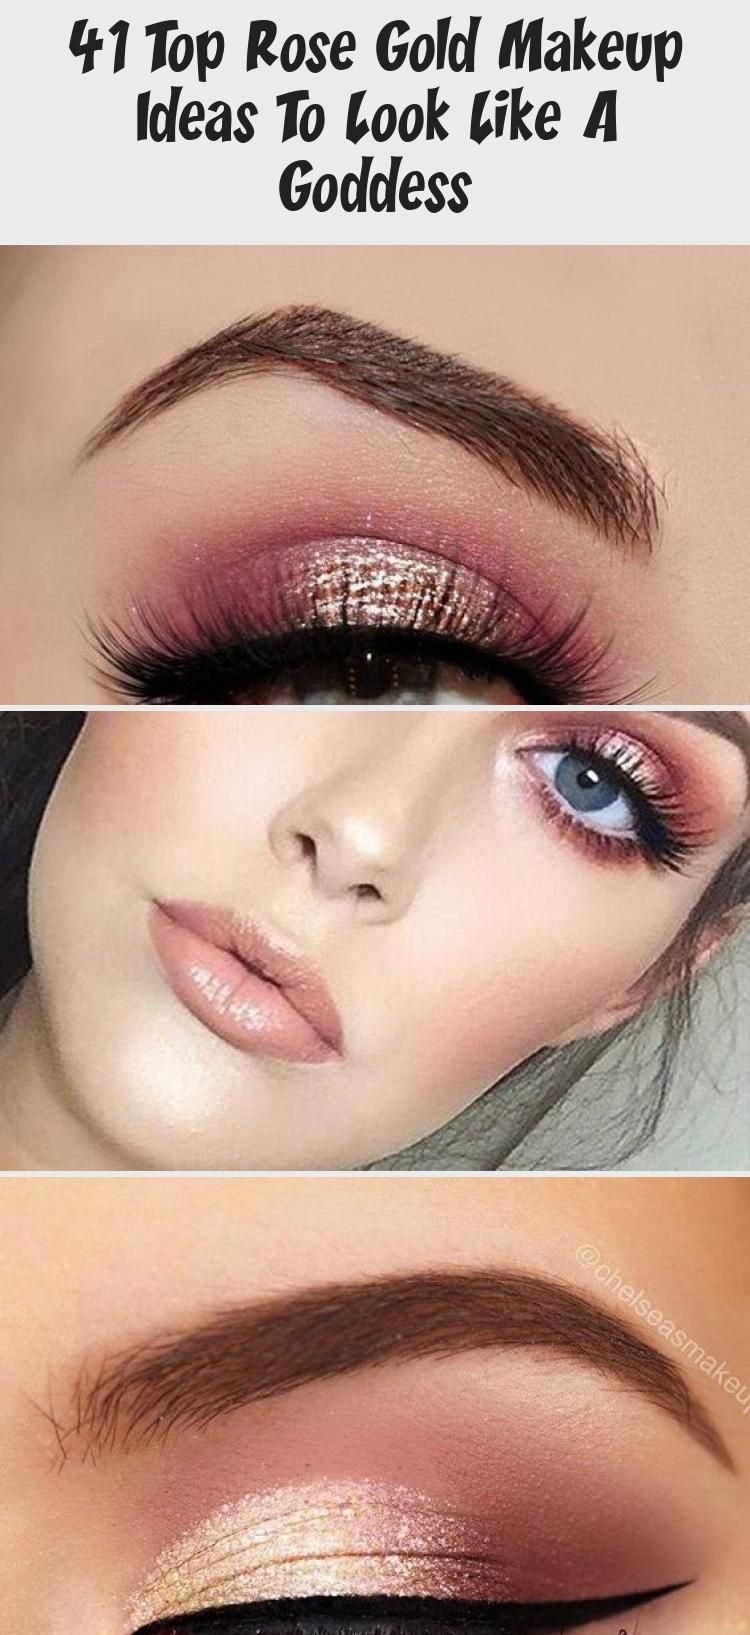 Photo of 41 Top Rose Gold Makeup Ideas To Look Like A Goddess – MaKeUp